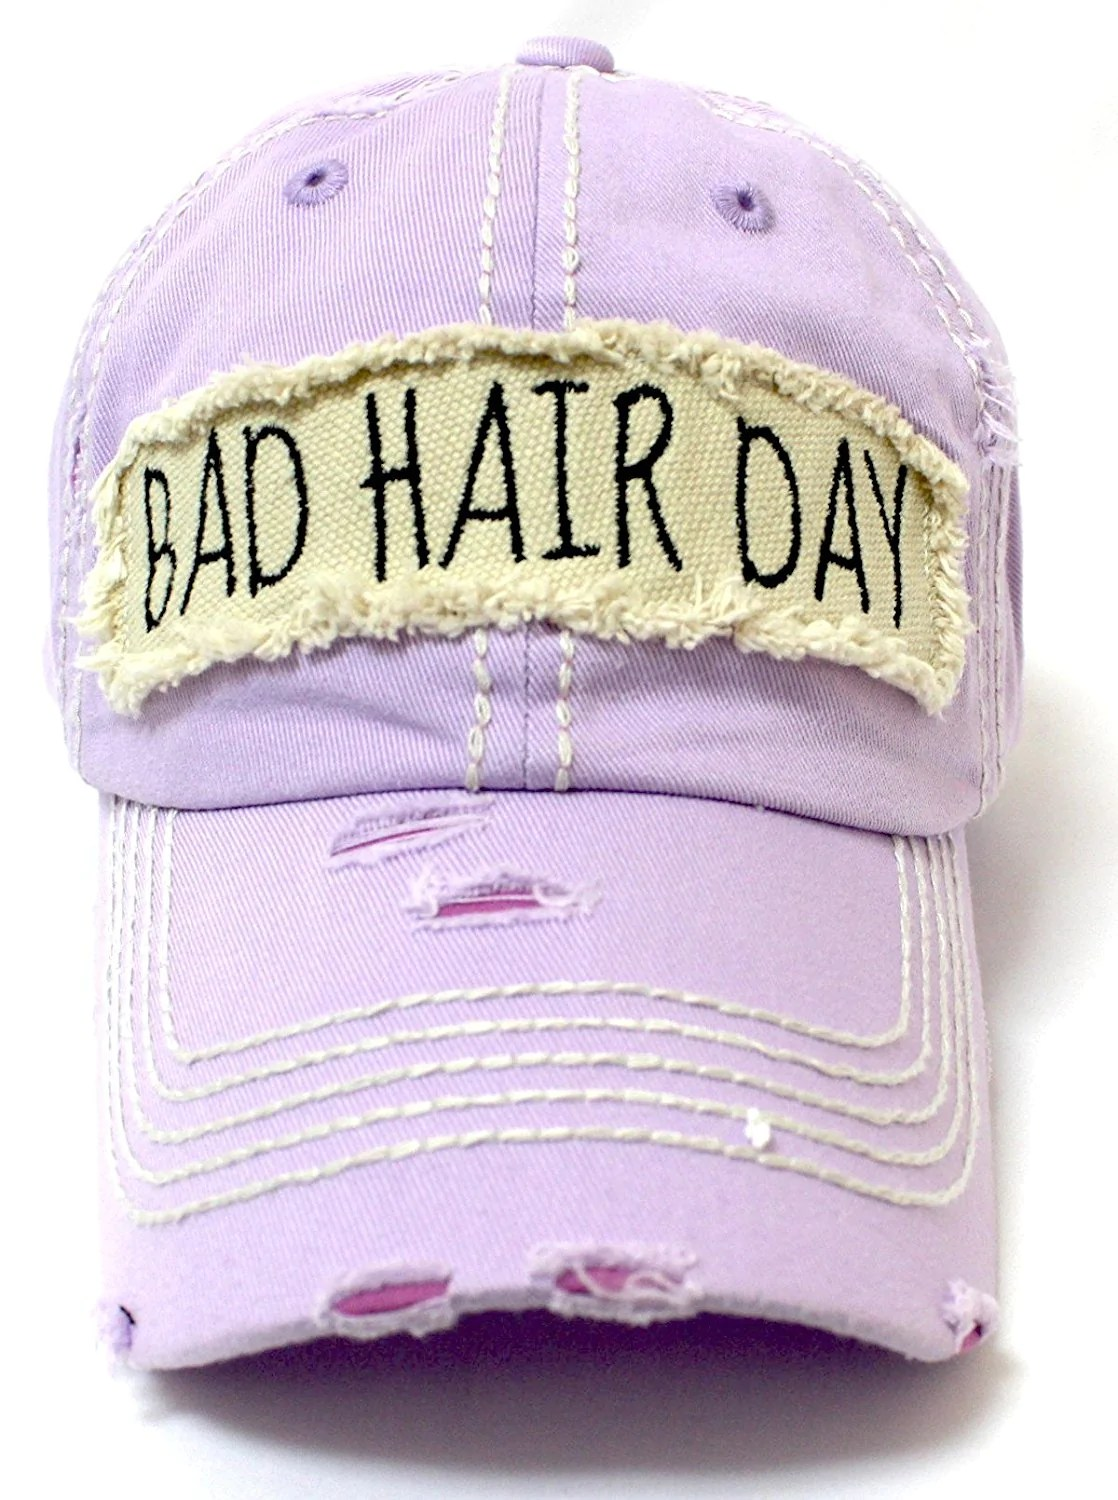 Vintage Bad Caps N Vintage Bad Hair Day Patch Embroidery Distressed Baseball Hat